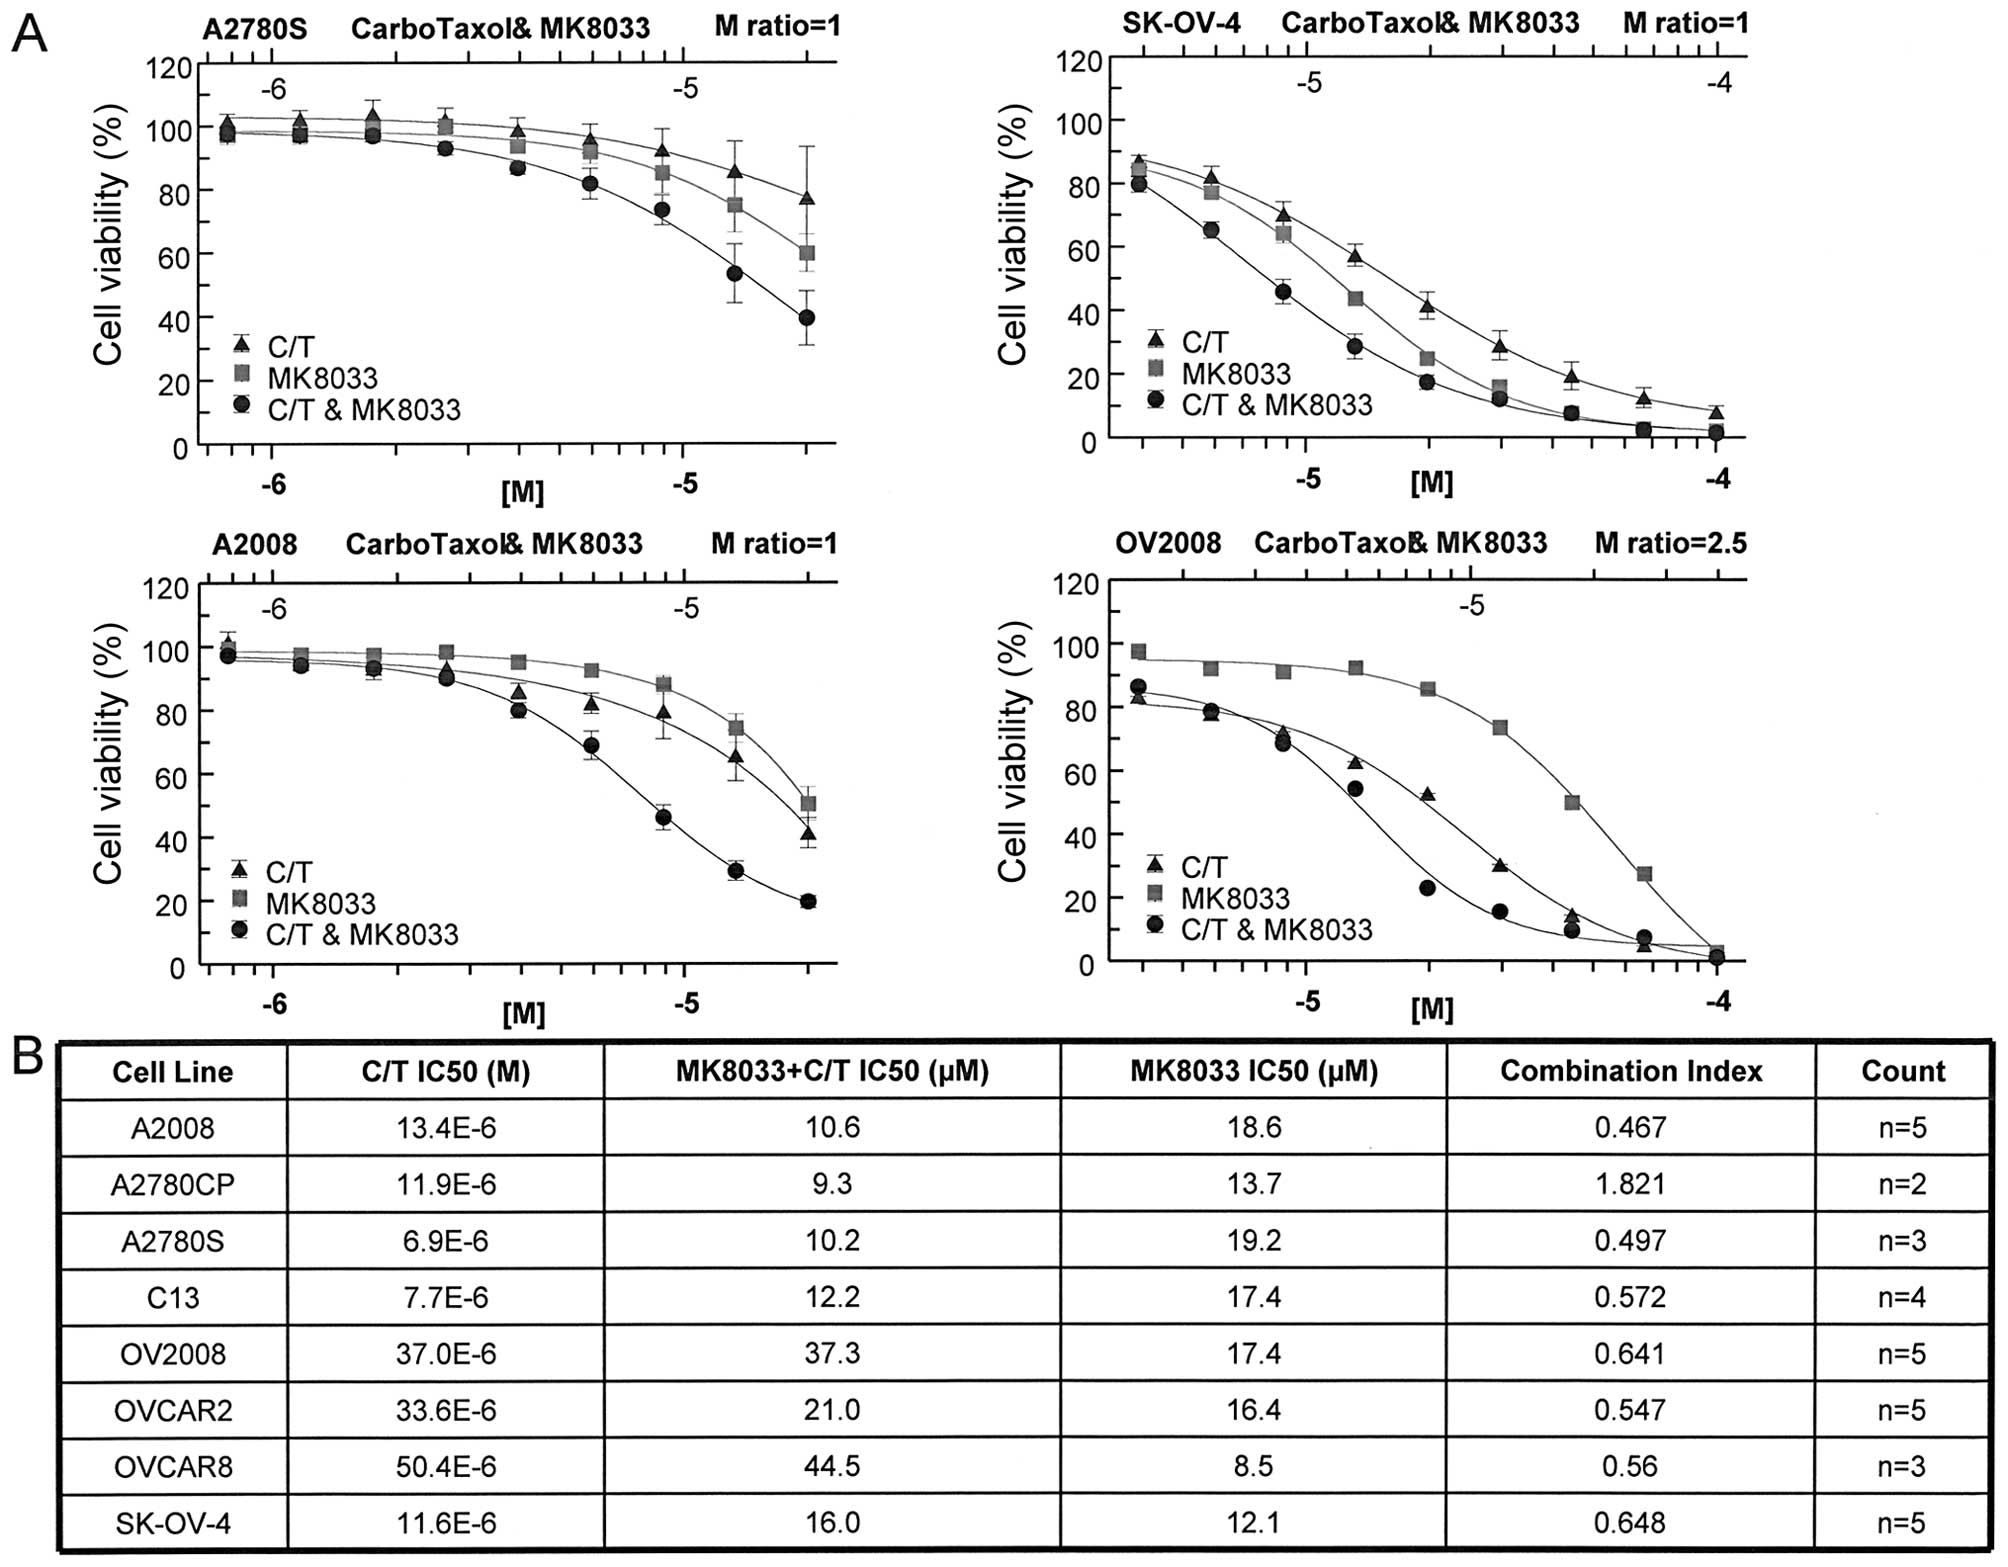 A Novel C Met Inhibitor Mk8033 Synergizes With Carboplatin Plus Paclitaxel To Inhibit Ovarian Cancer Cell Growth